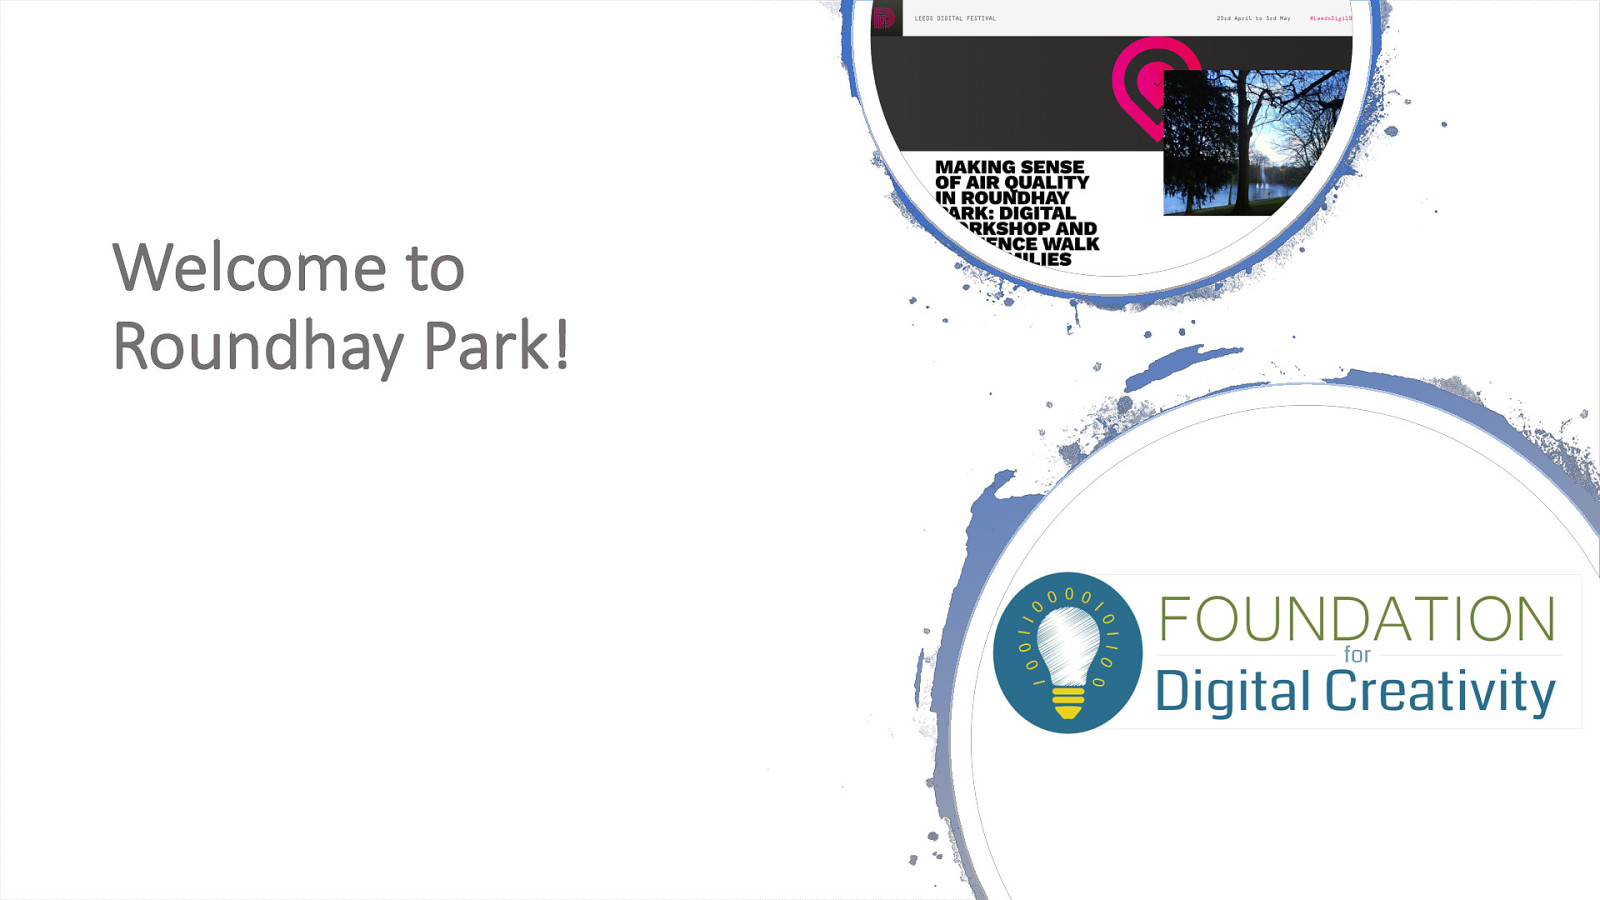 Making Sense of Air Quality in Roundhay Park: Digital Workshop and a Science Walk for Families